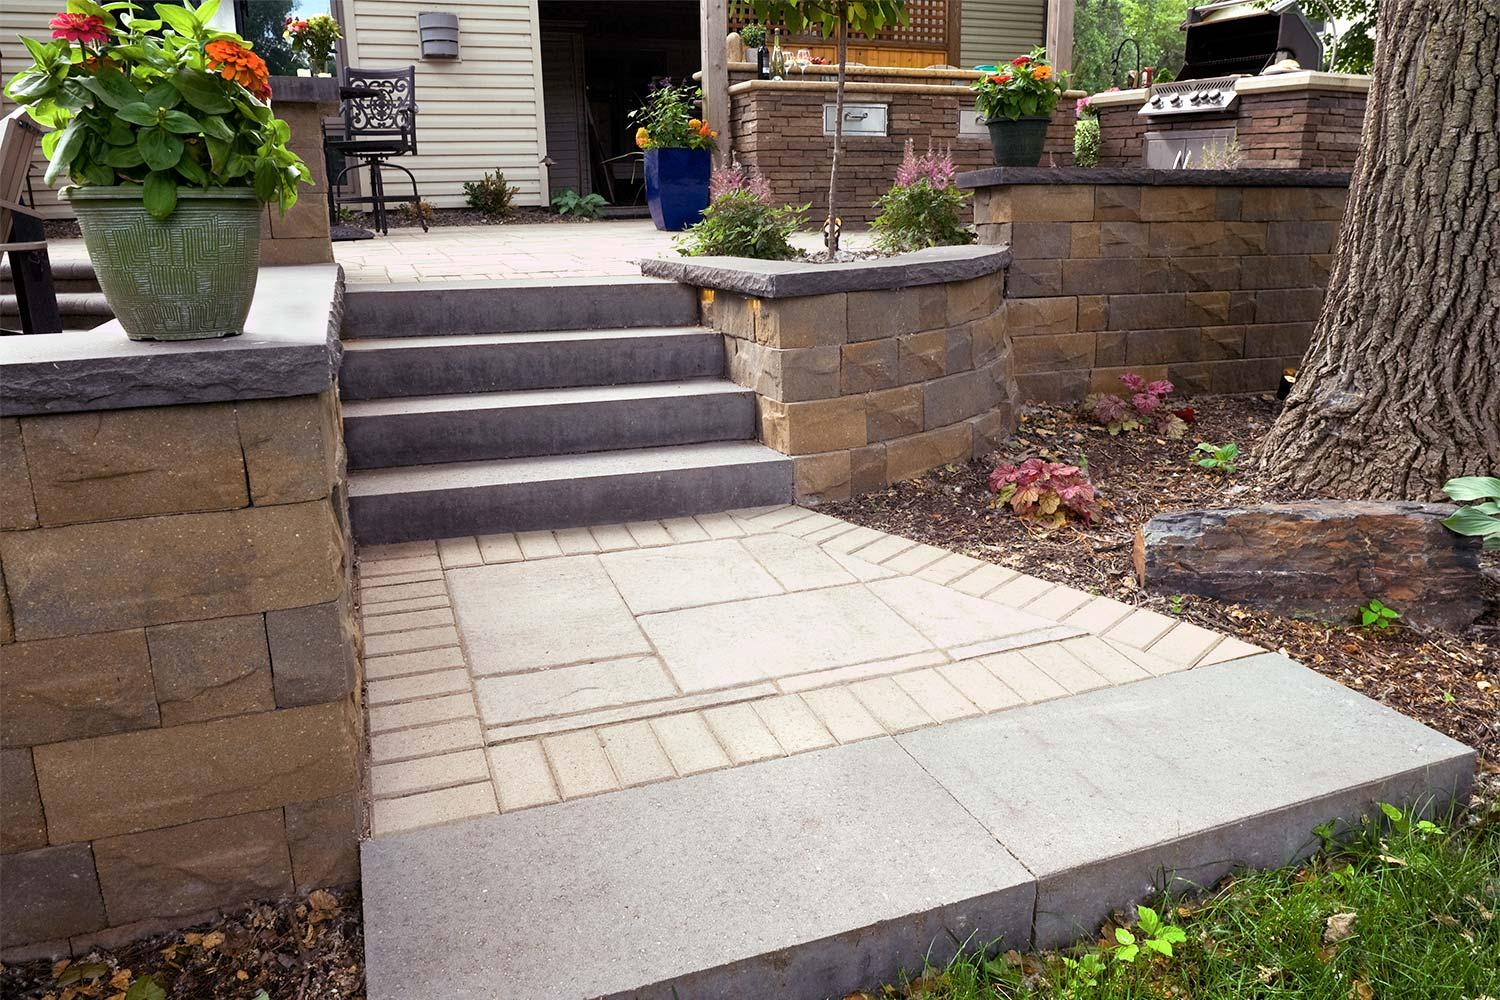 Modular brick outdoor steps.